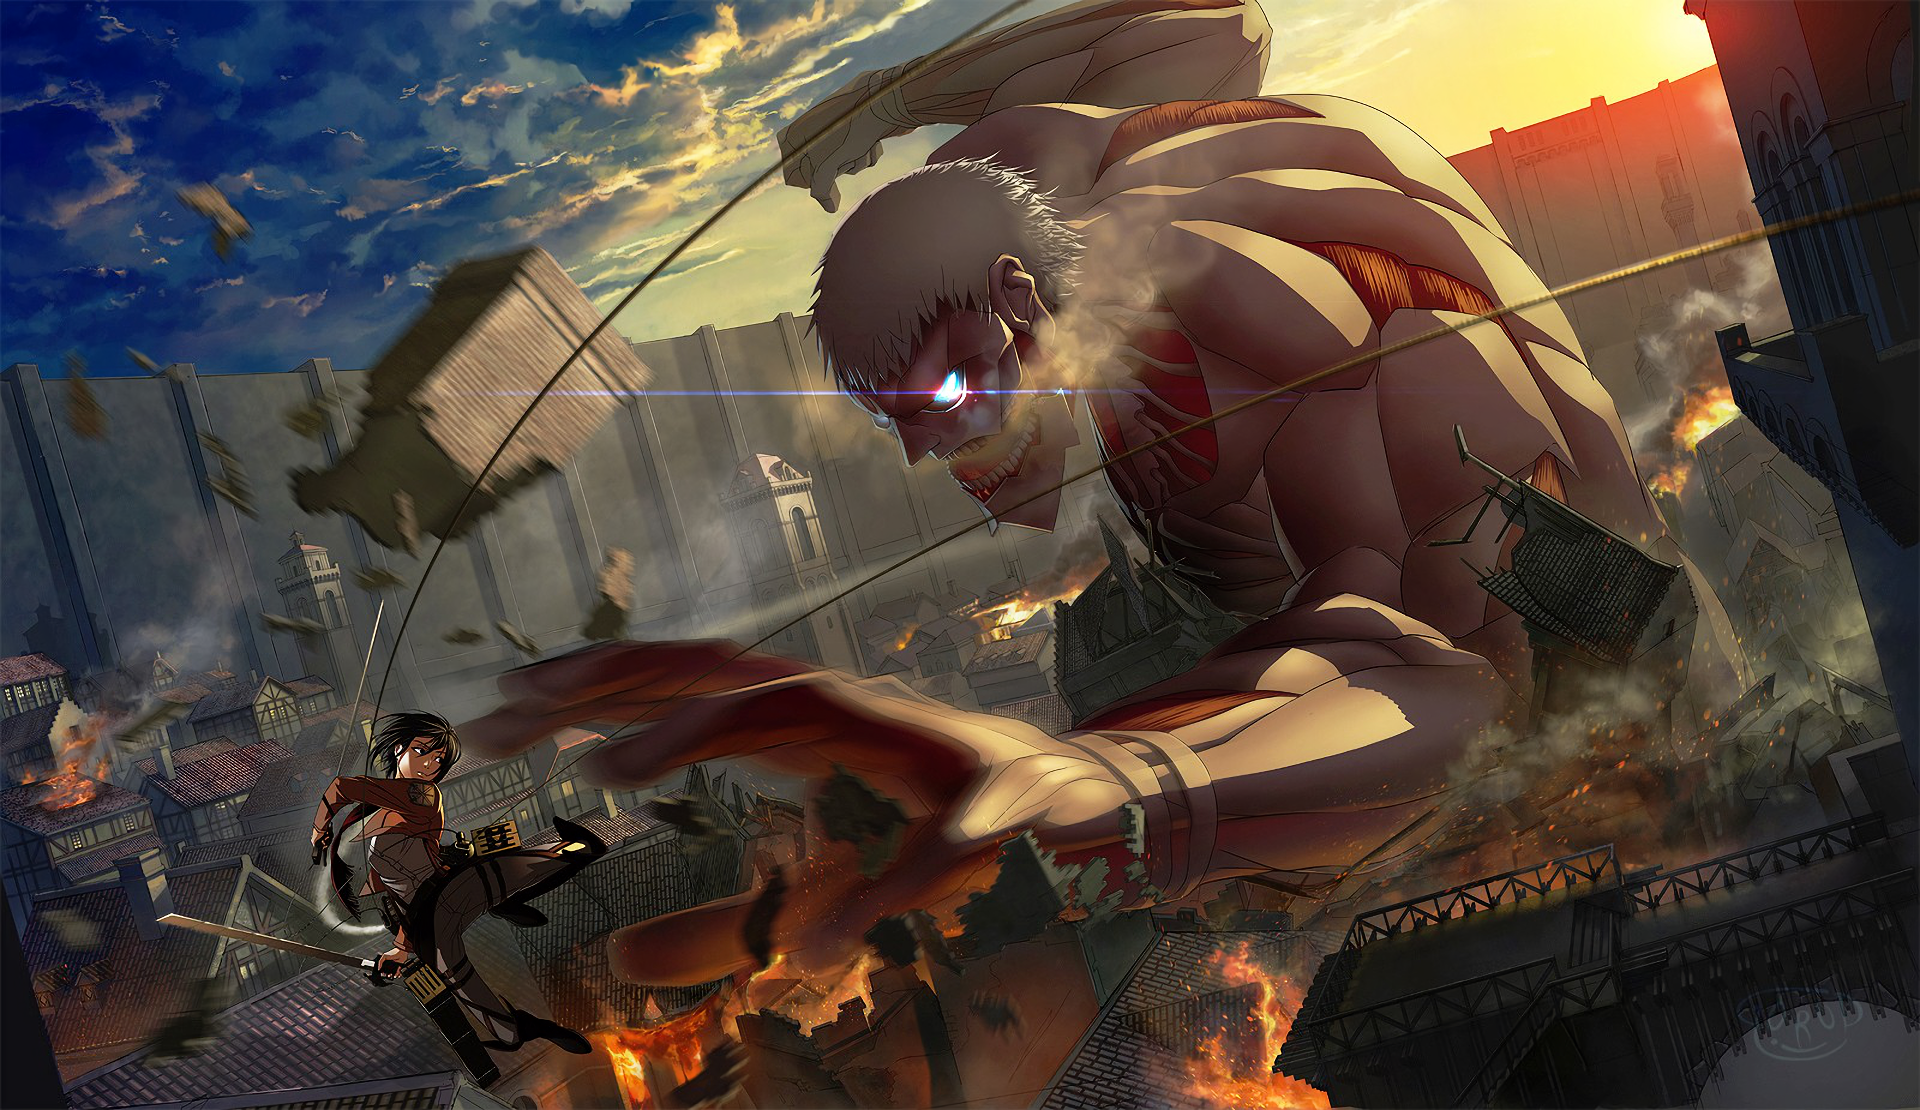 698 Mikasa Ackerman Hd Wallpapers Background Images Wallpaper Abyss